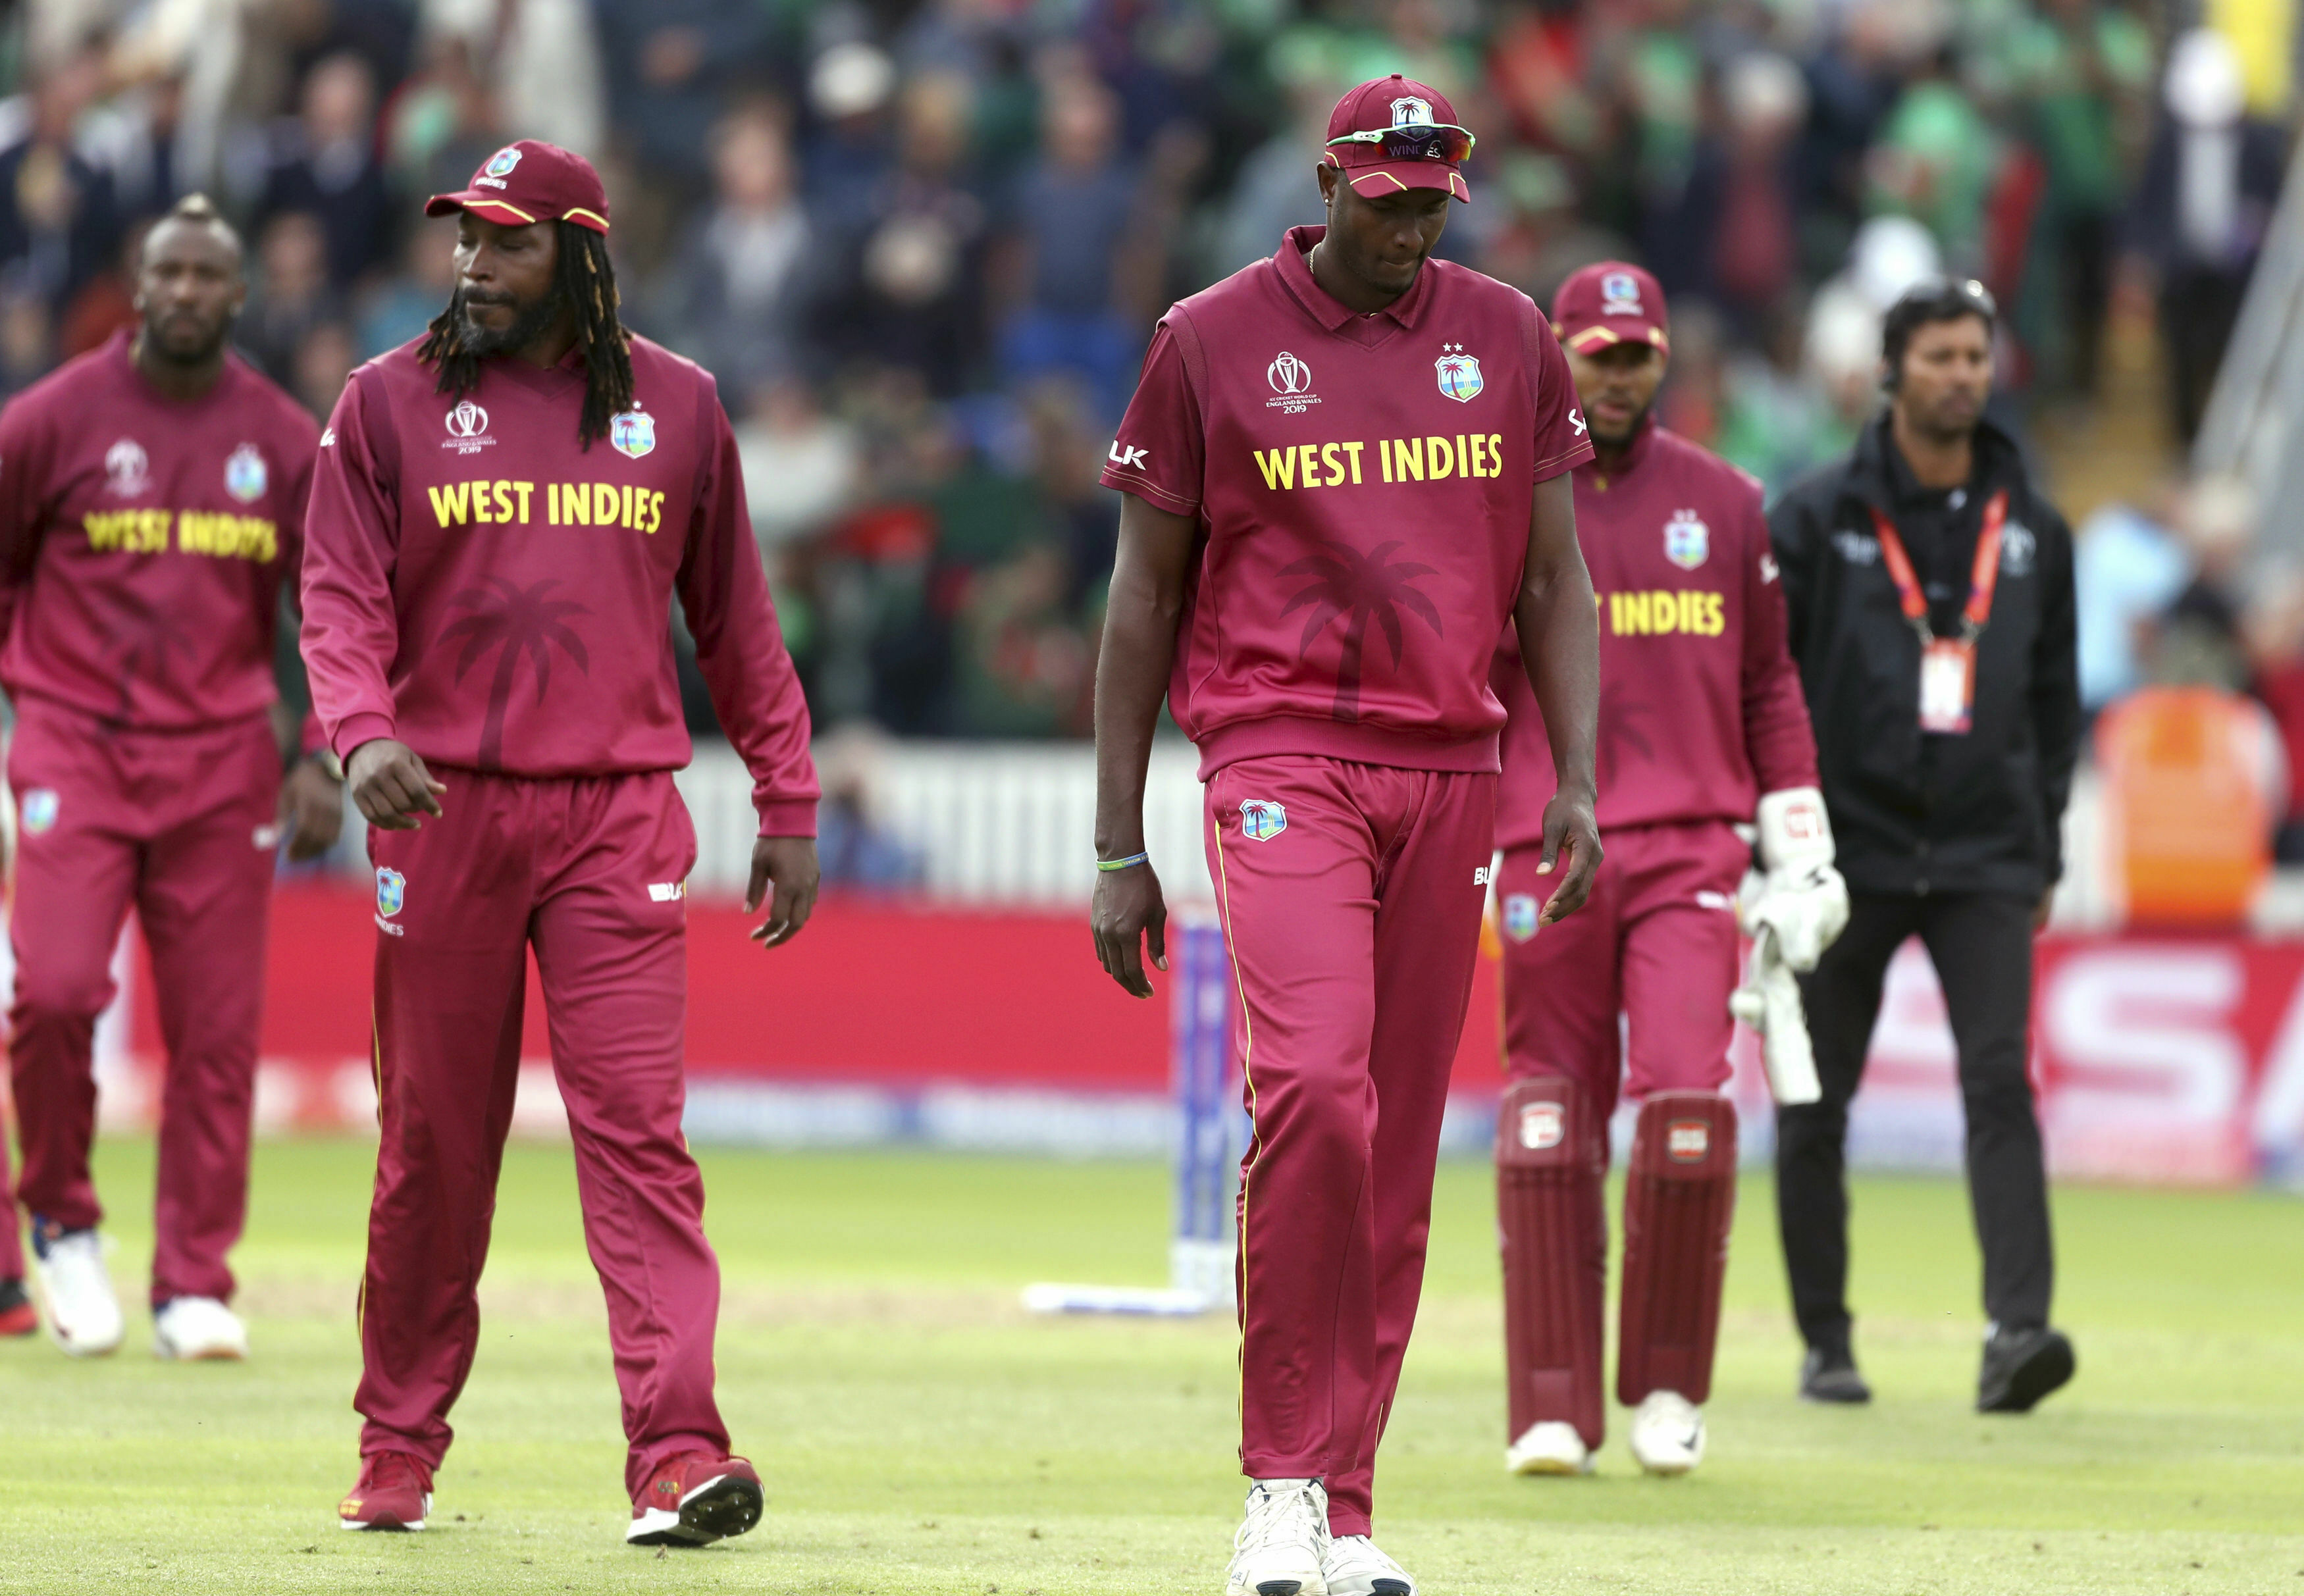 West Indies players walk off dejected after losing the Cricket World Cup match between West Indies and Bangladesh at The Taunton County Ground, Taunton, south west England, Monday June 17, 2019. (David Davies/PA via AP)